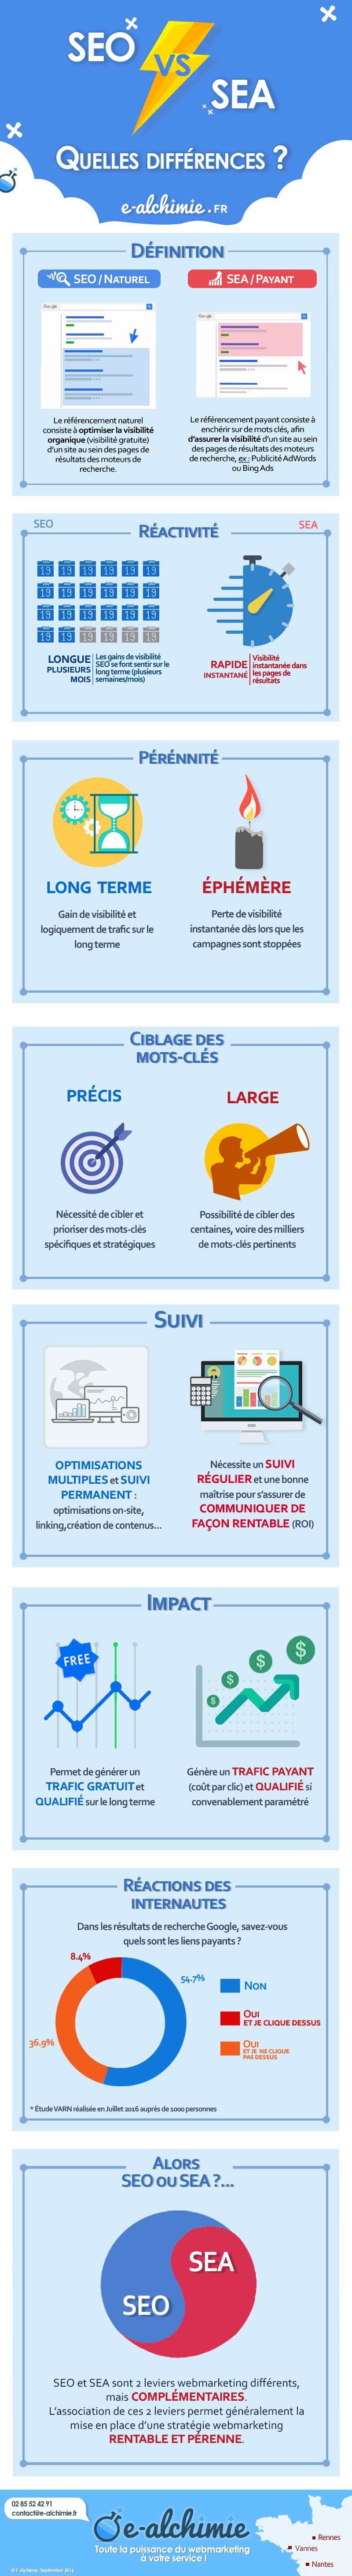 infographie-difference-seo-vs-sea